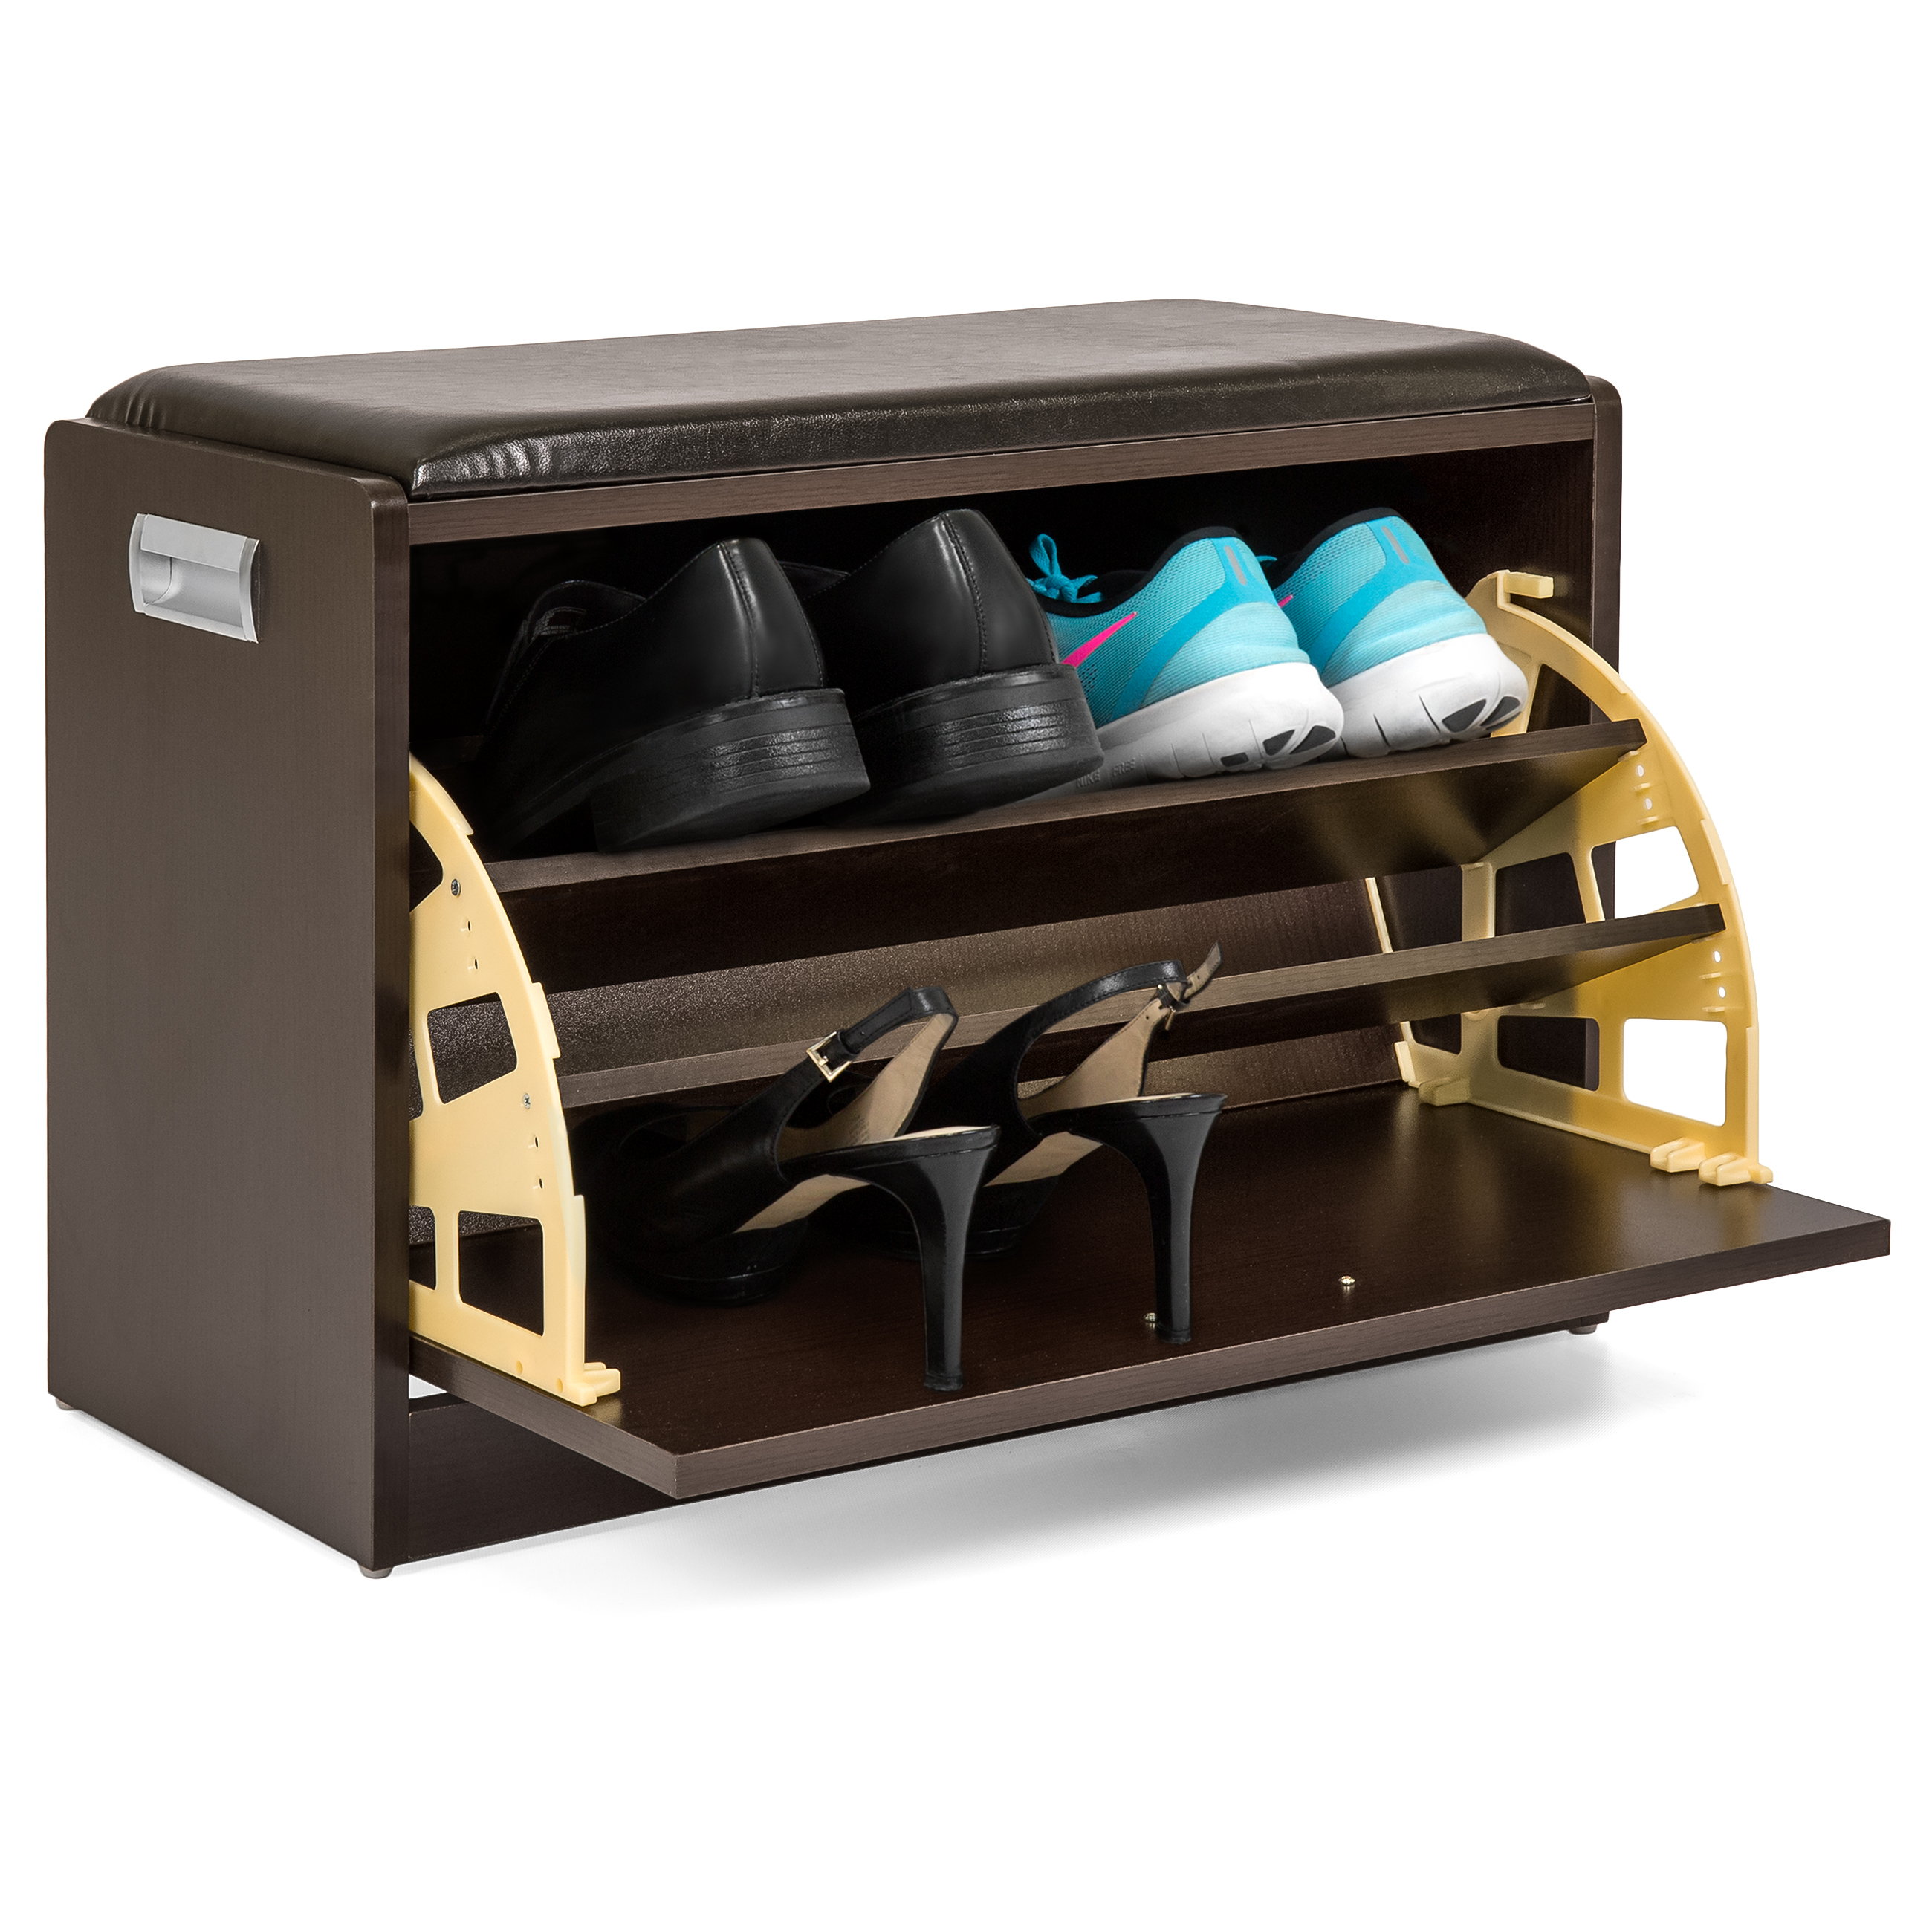 Best Choice Products Wood Shoe Bench Storage Ottoman Shelf W/ Handle (Brown)